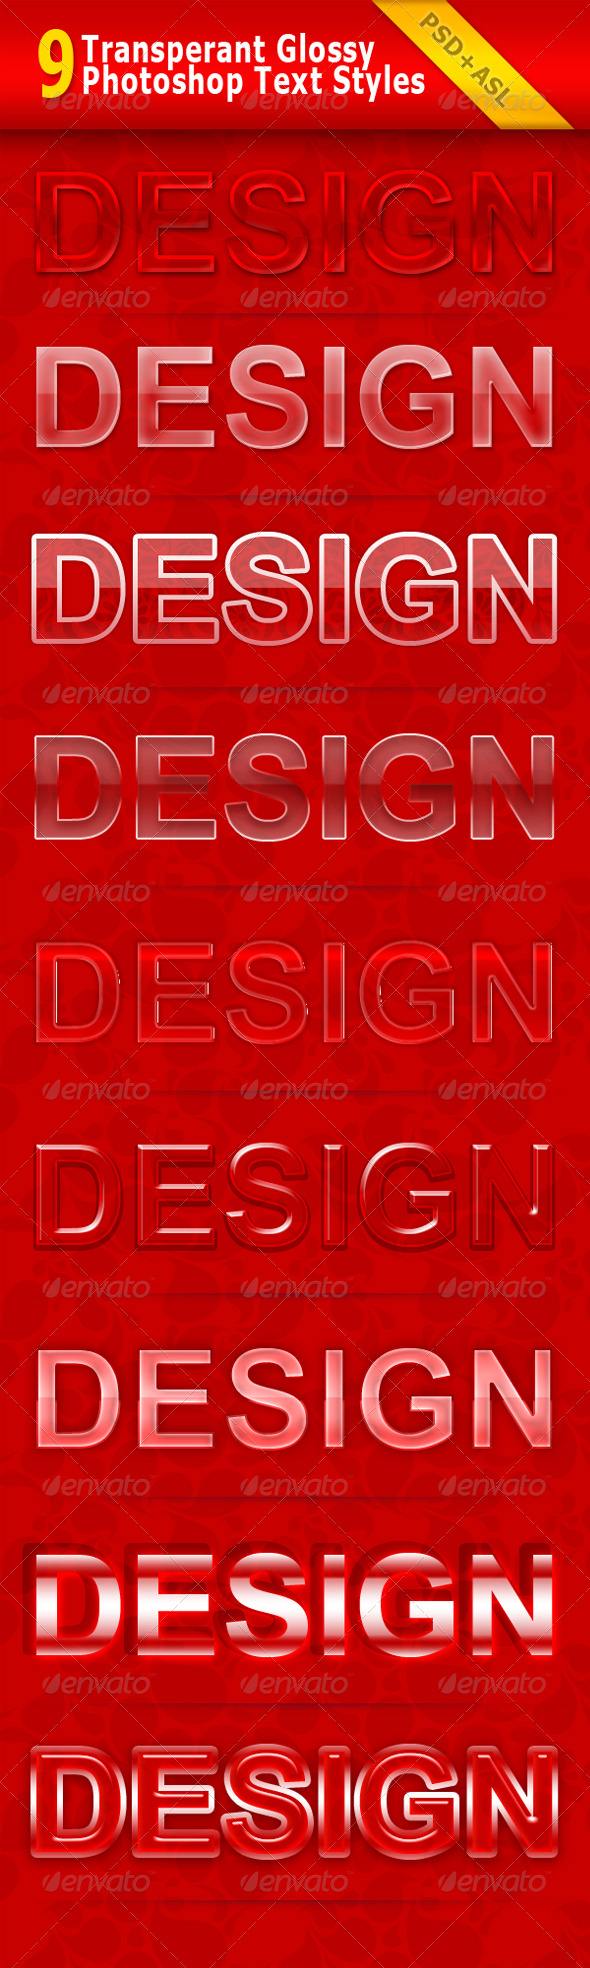 GraphicRiver 9 Transparent Glossy Photoshop Text Styles 150545